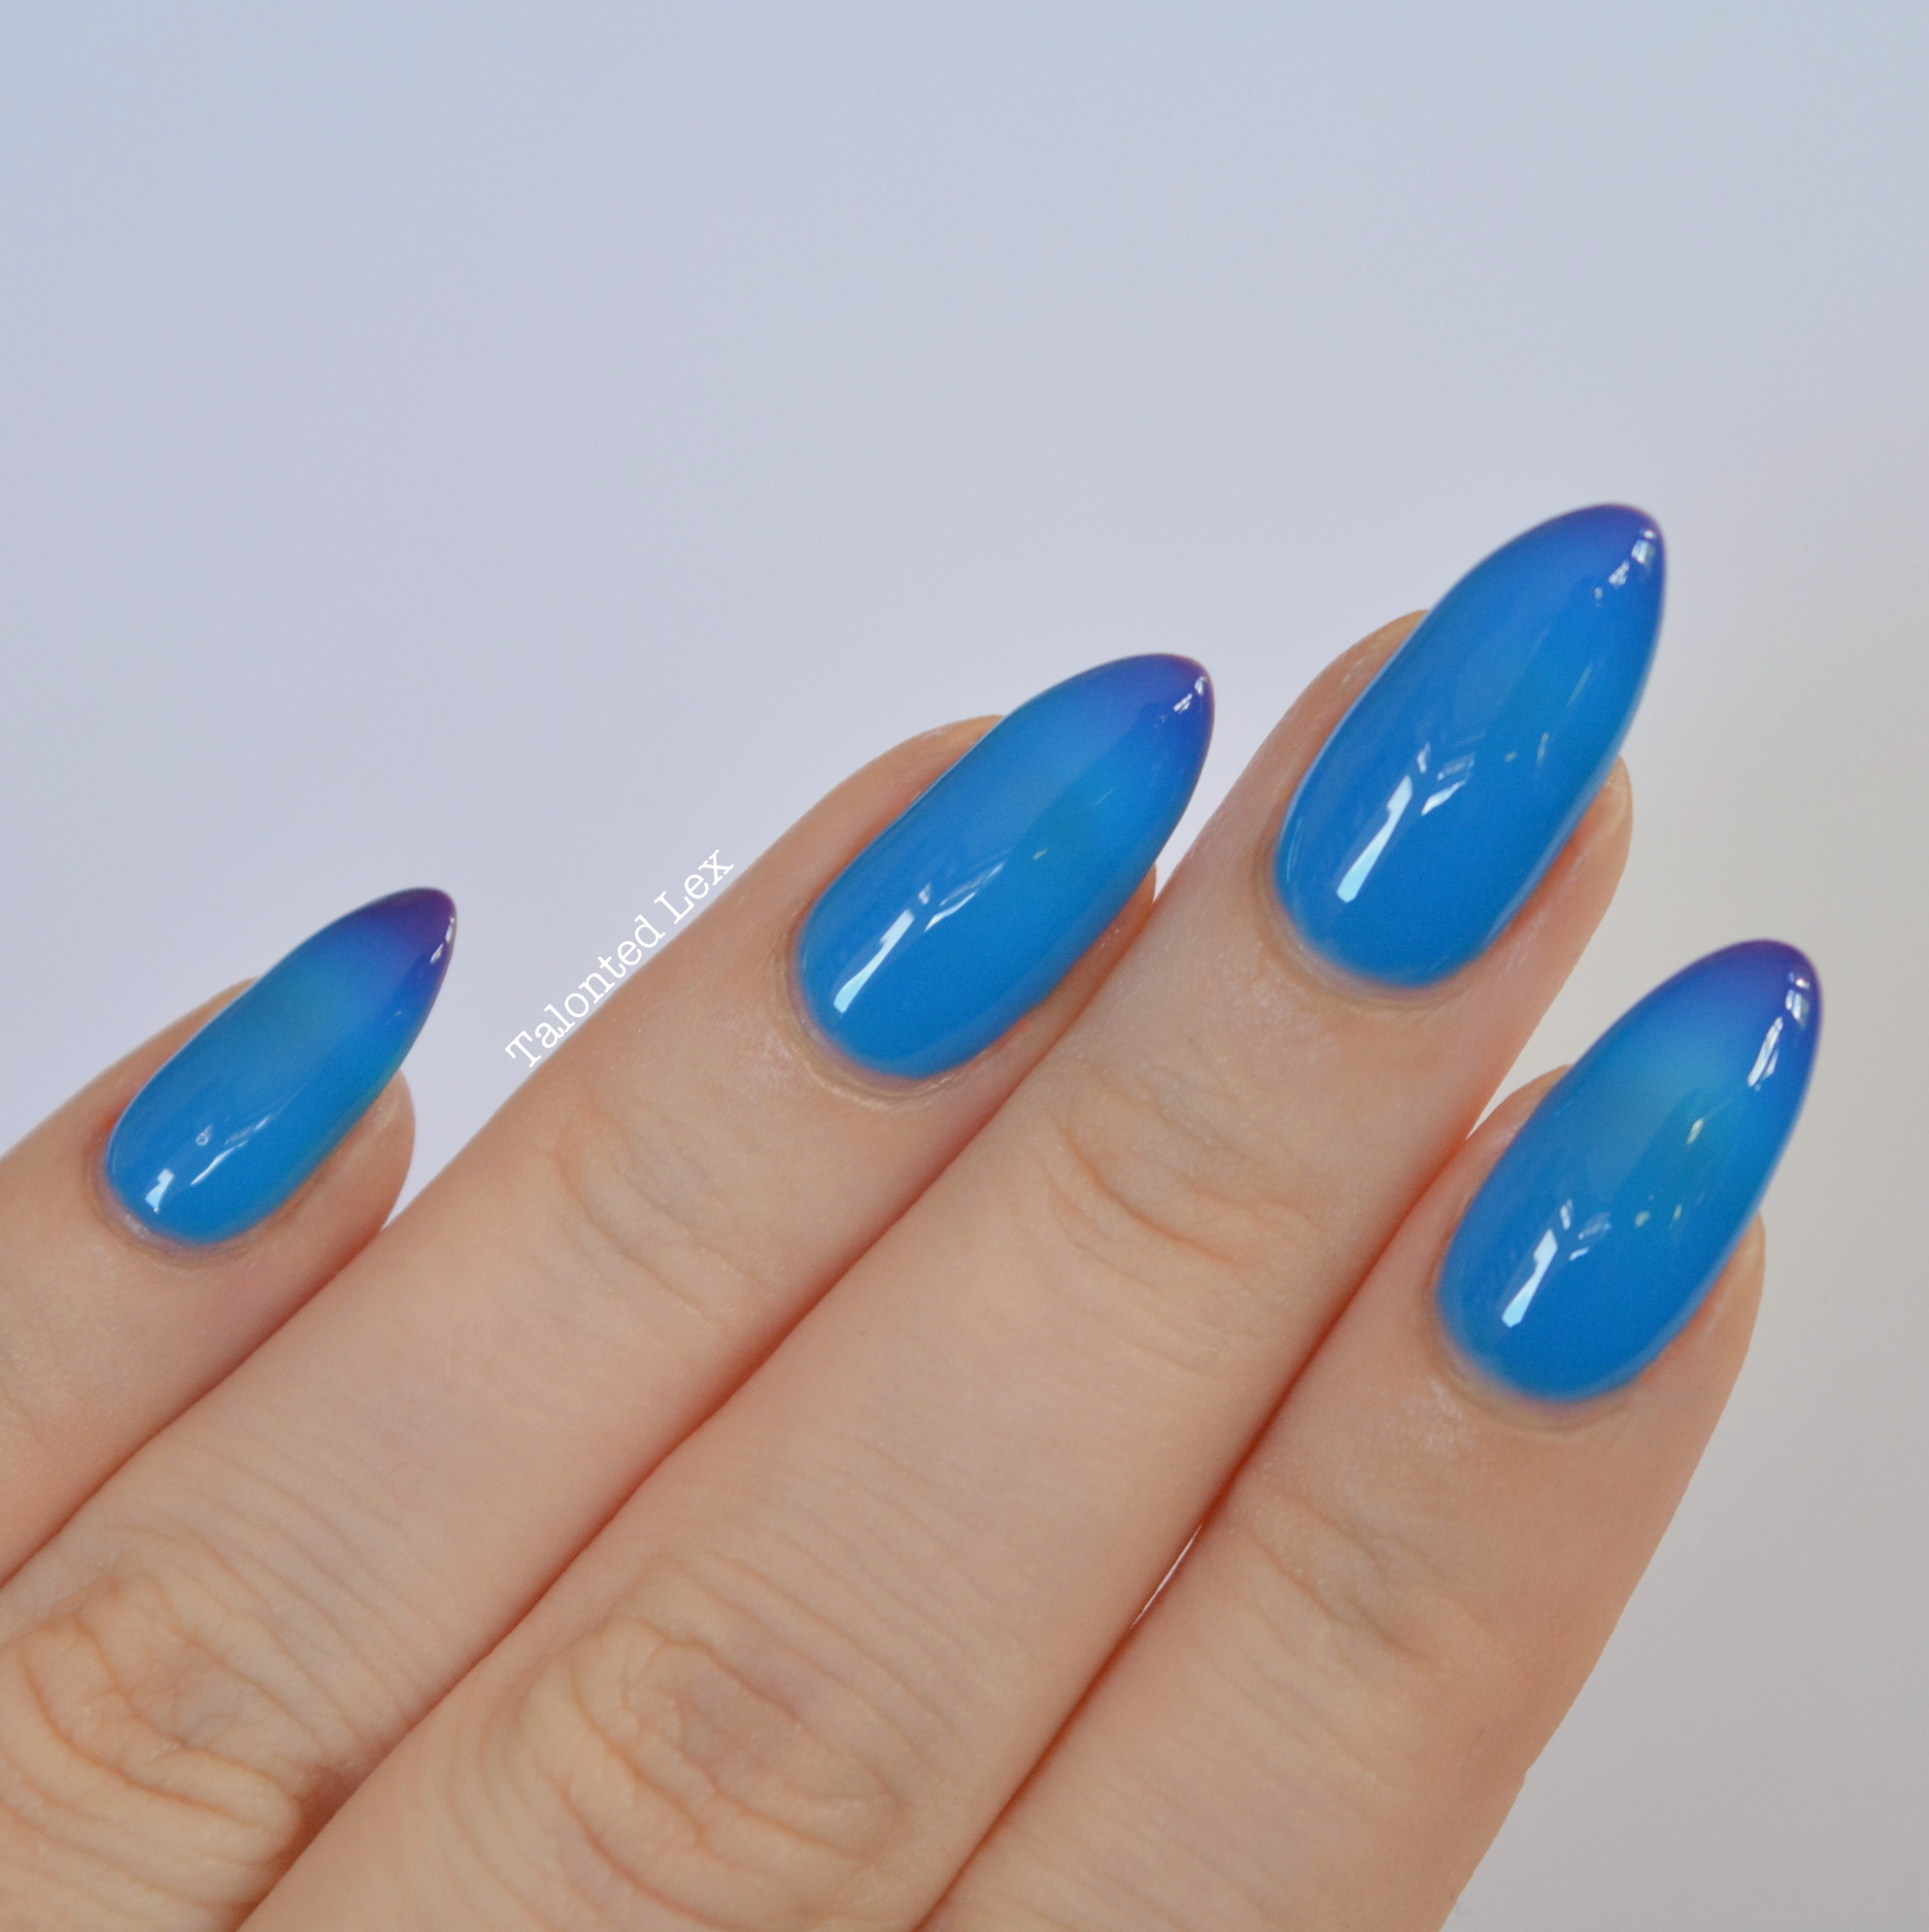 Madam Glam Chameleon Colour Changing Gel Polish - talonted lex